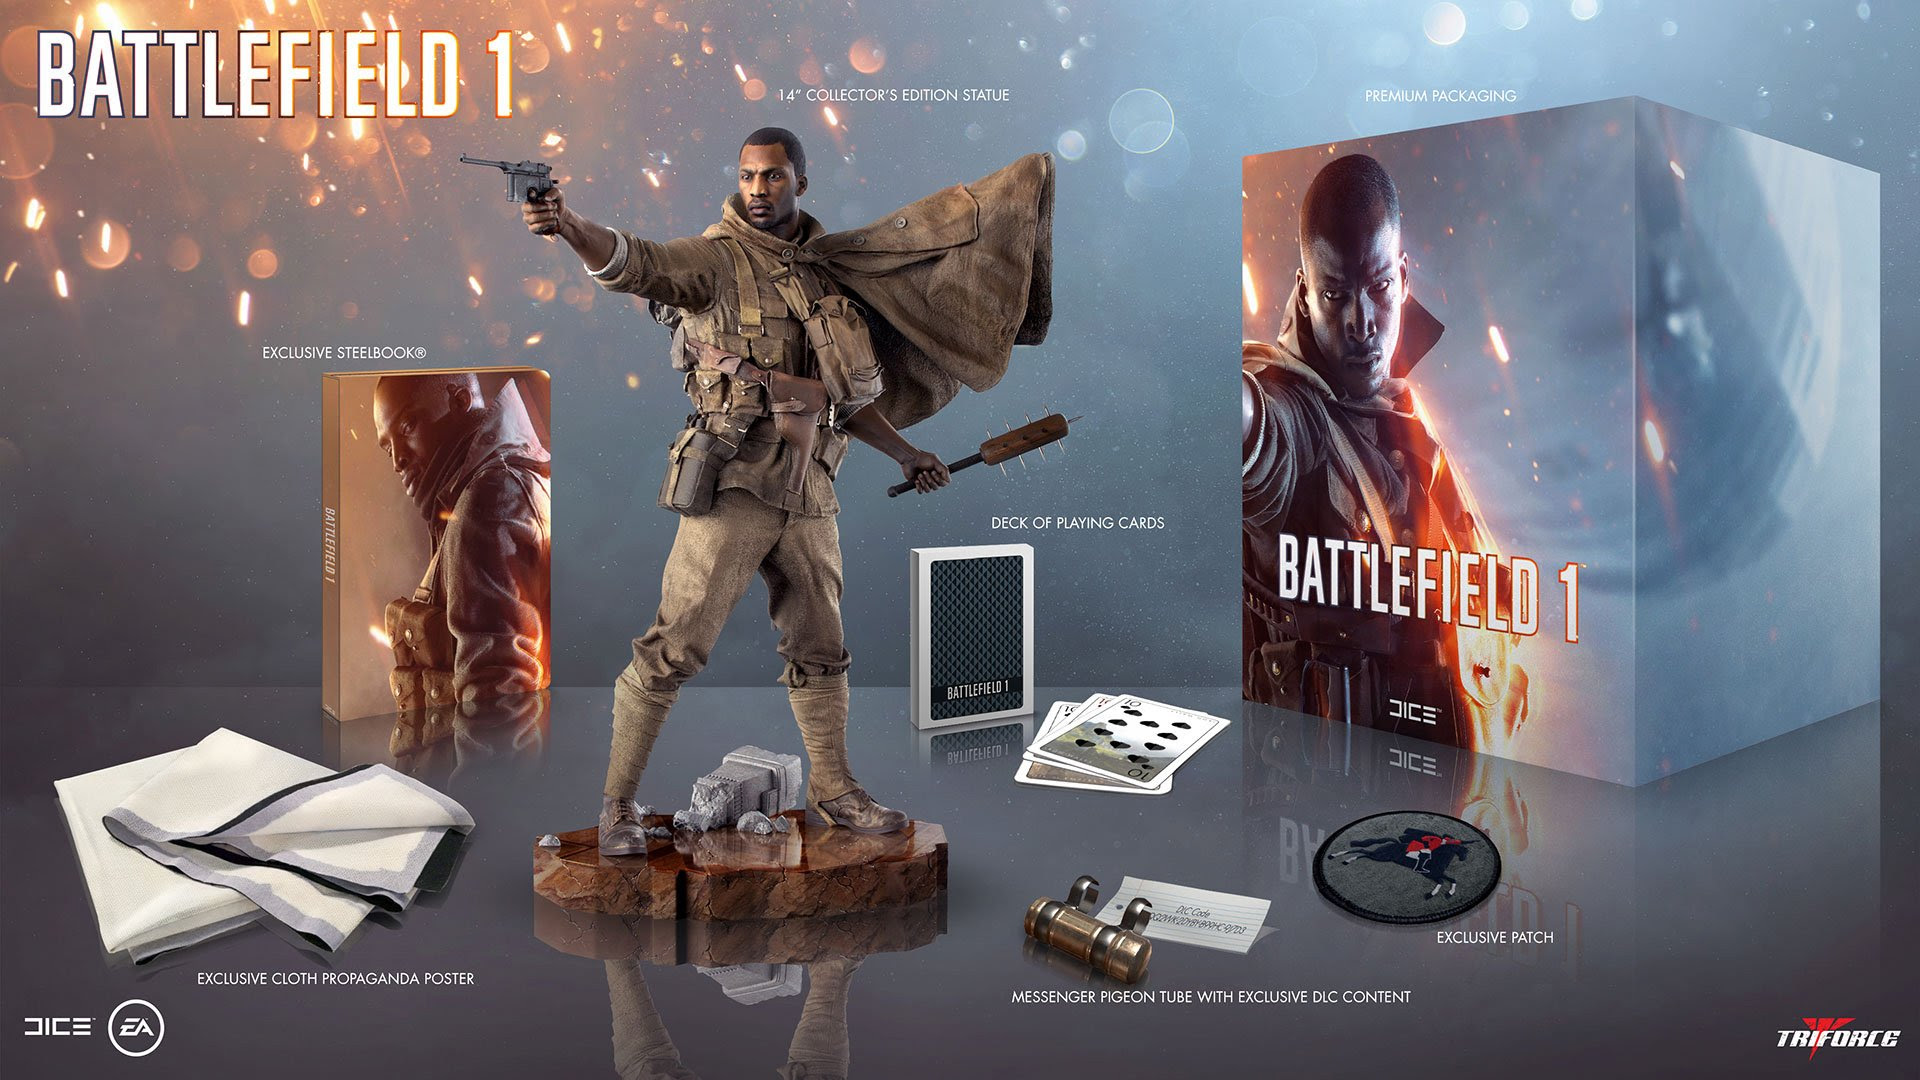 Deal: Expensive Battlefield 1 collector's edition now only $18, minus the game screenshot